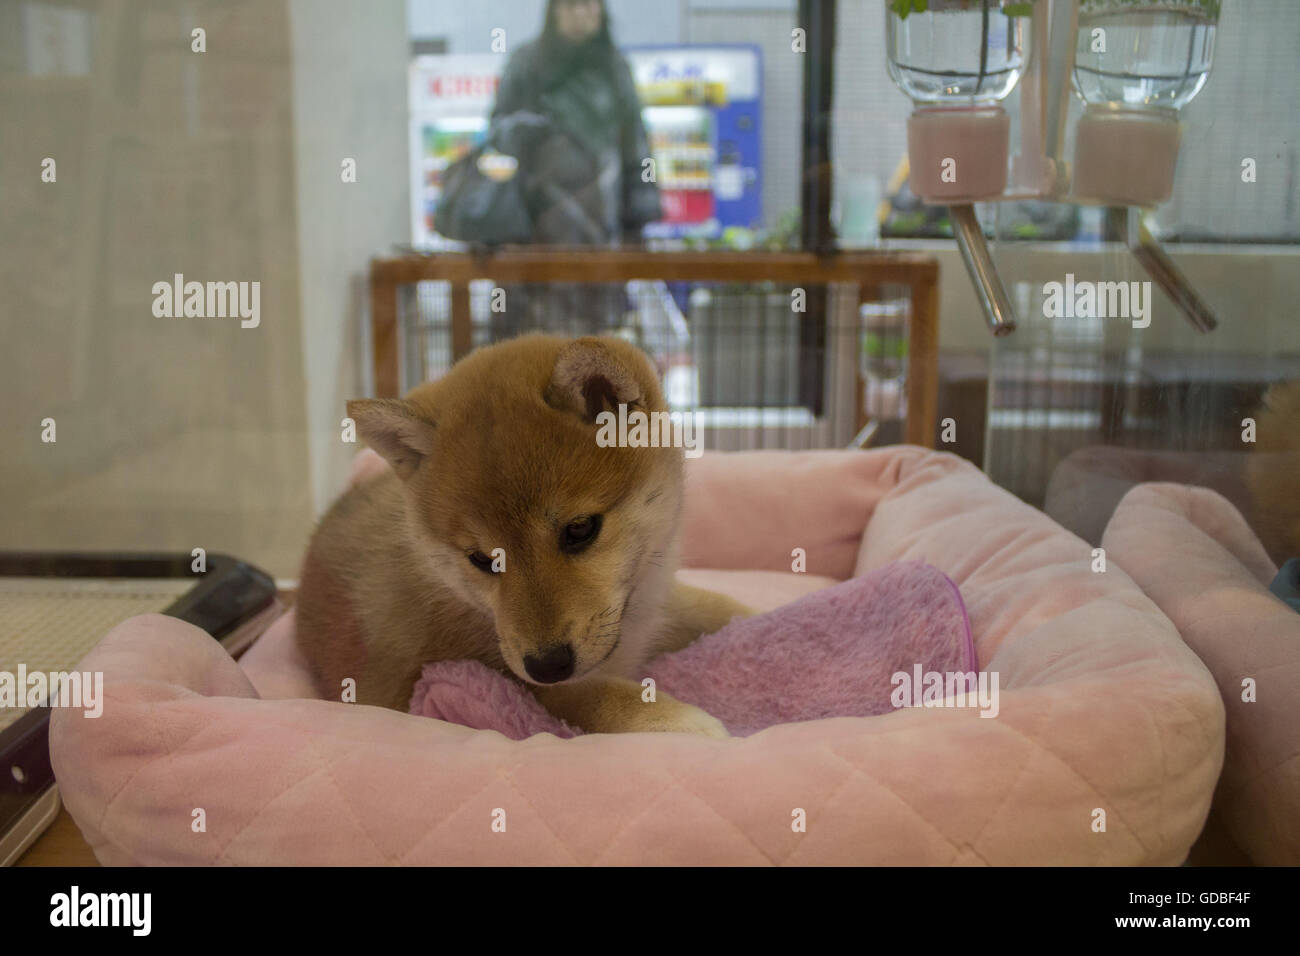 Shiba inu puppy in a pet store in Tokyo Japan Stock Photo  111506095 ... ed43280c245f